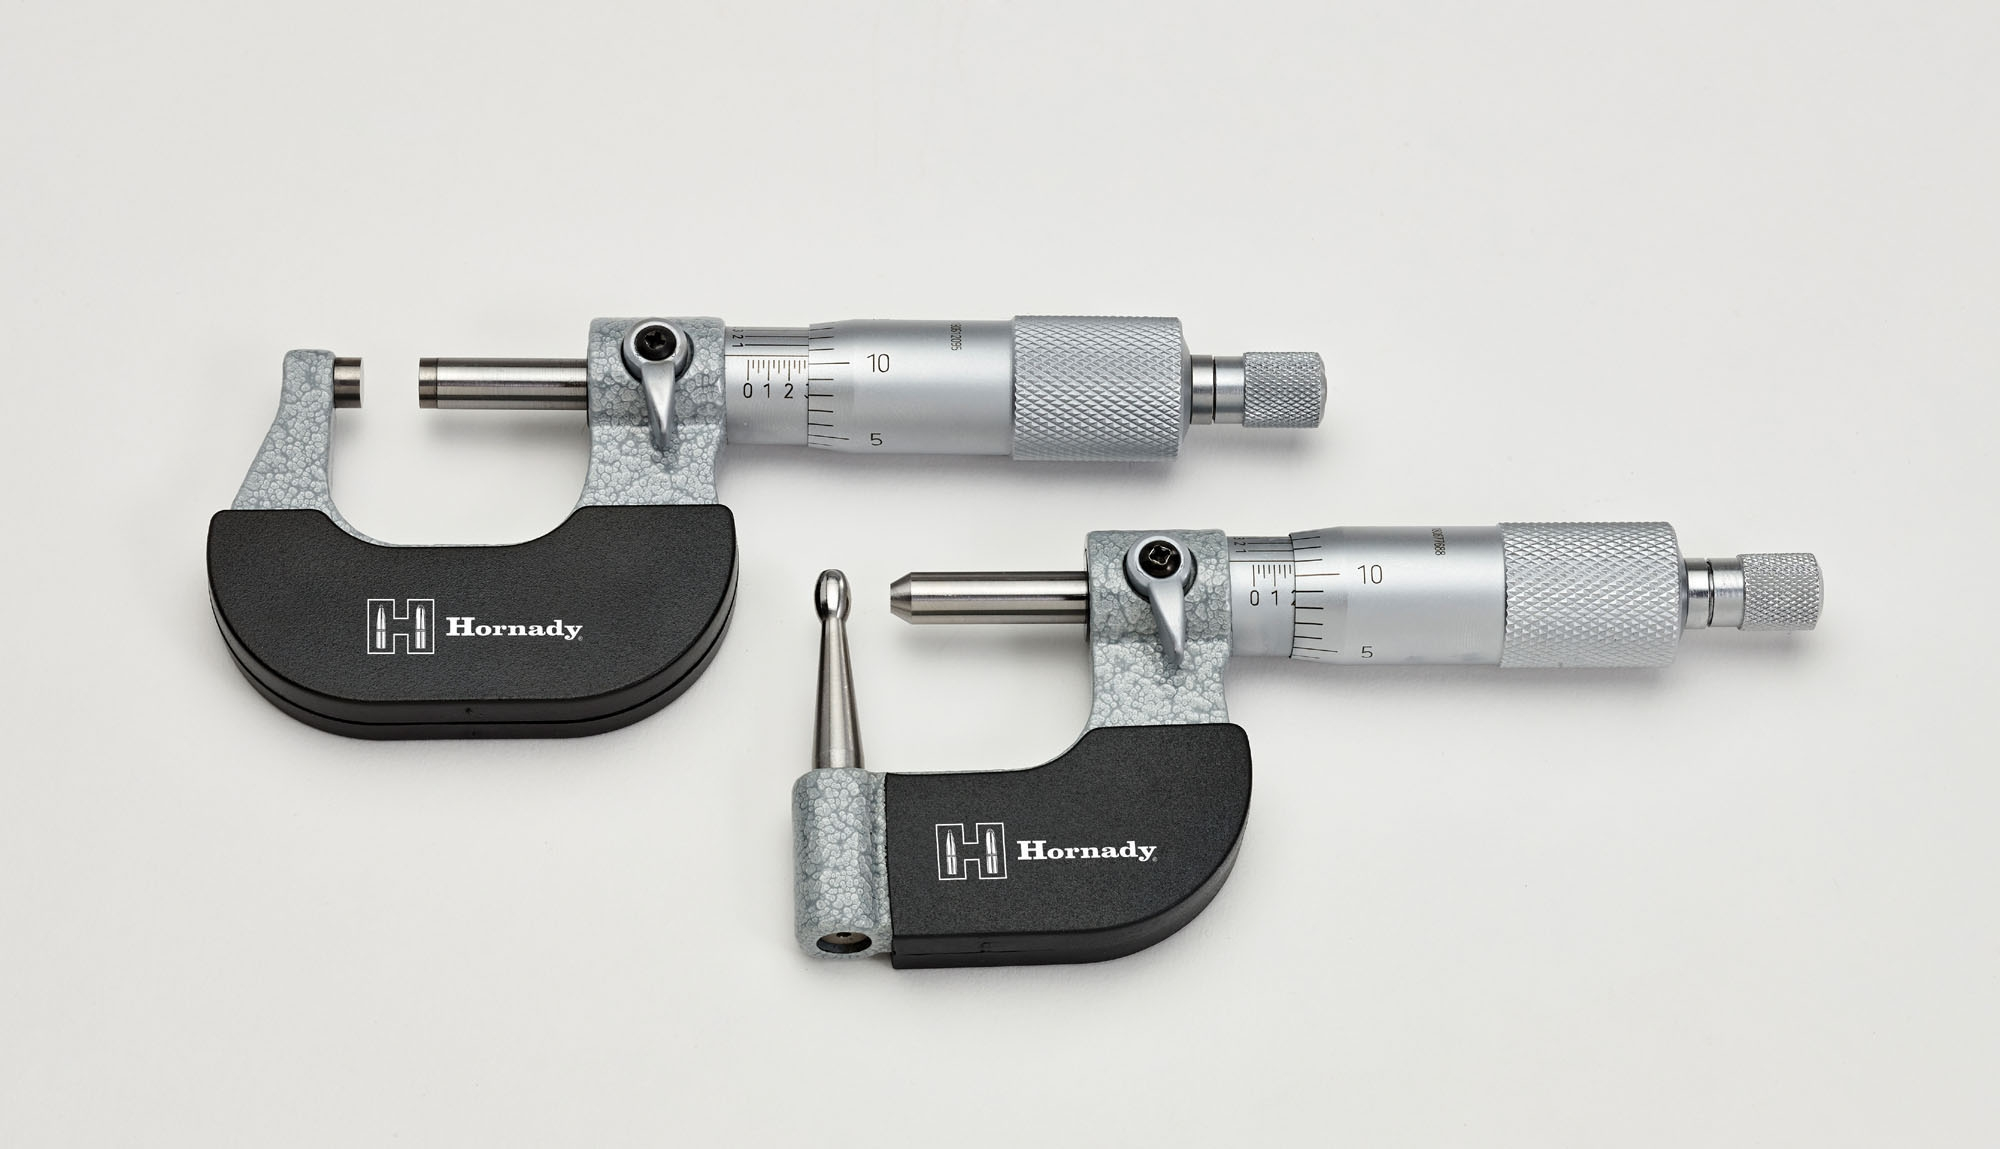 The new micrometers and tools from Hornady